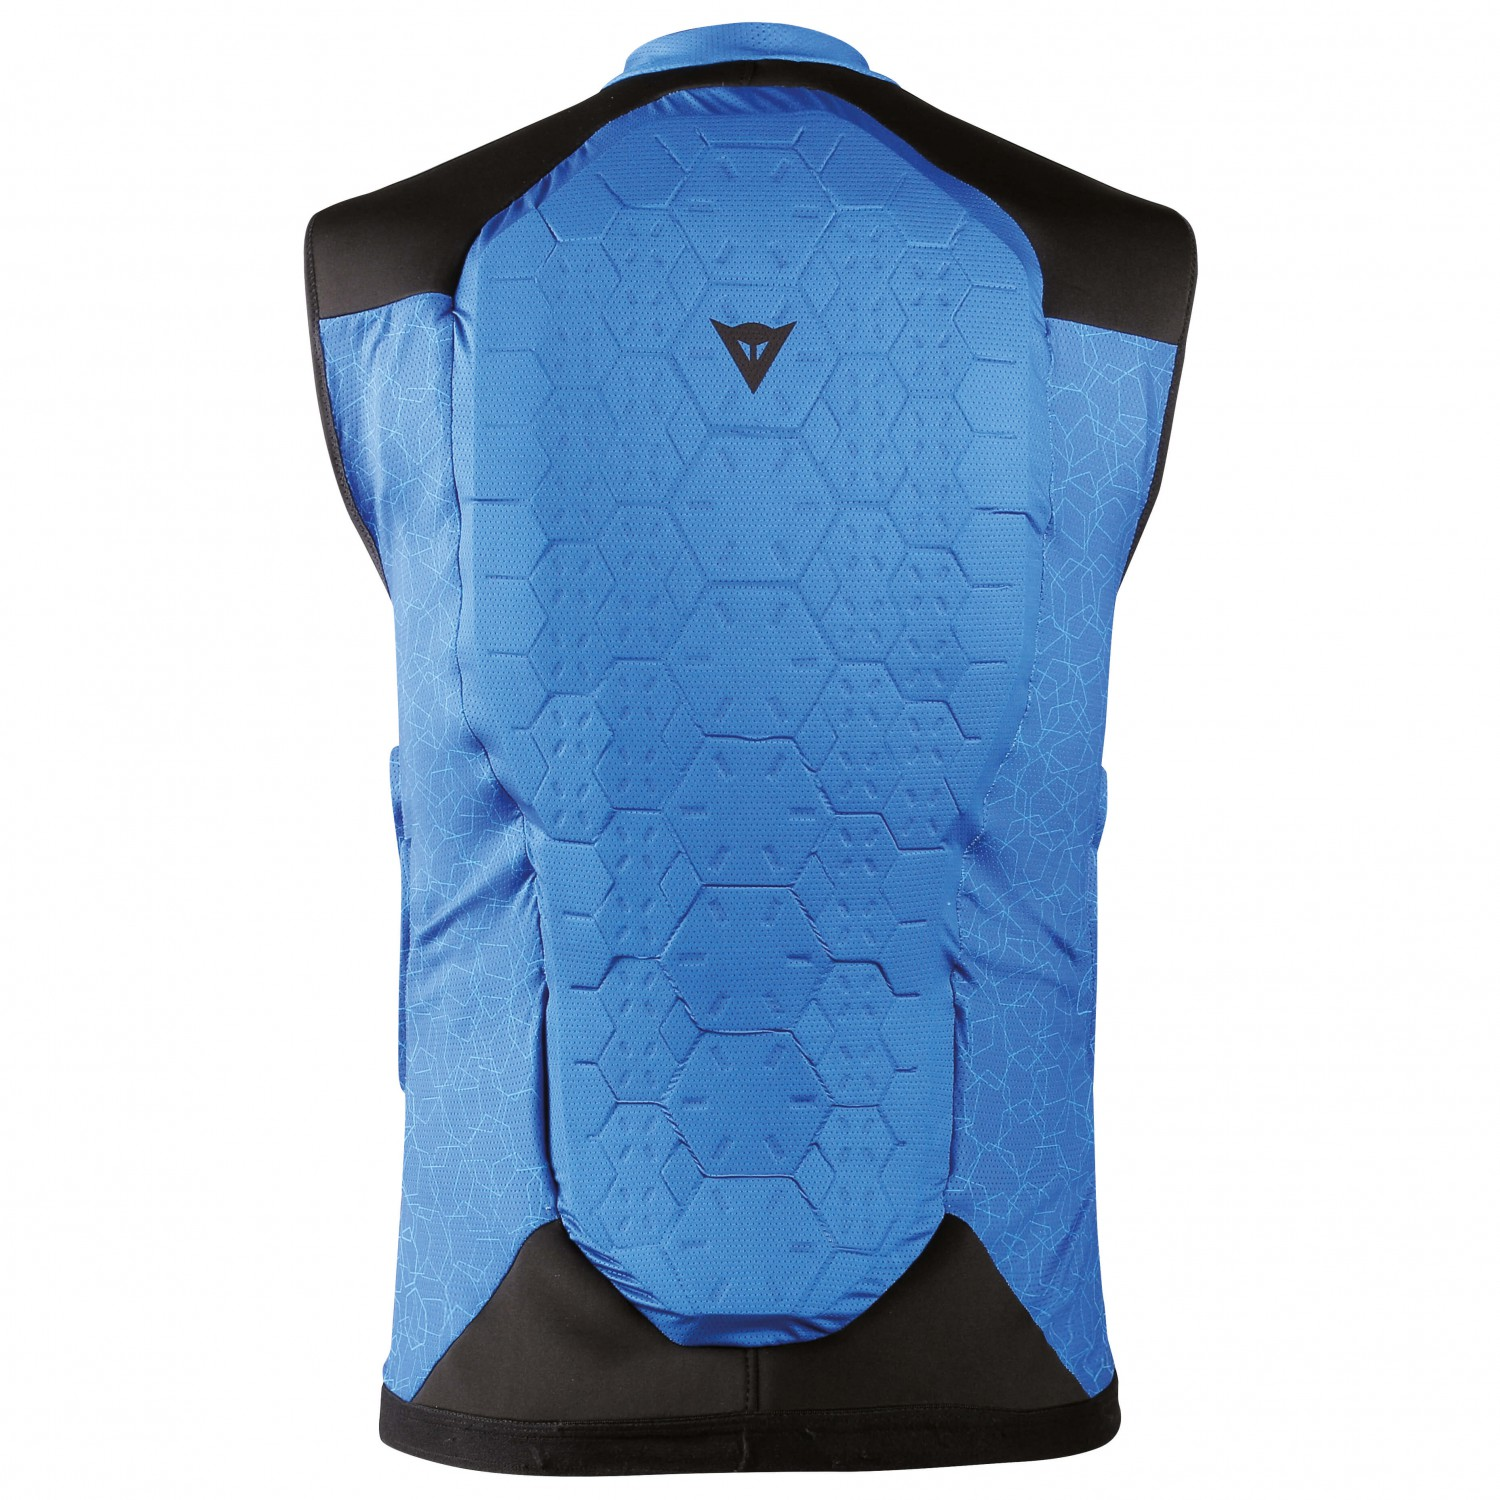 d9a1c0aec Dainese Flexagon Waistcoat - Protector Men's | Free UK Delivery ...